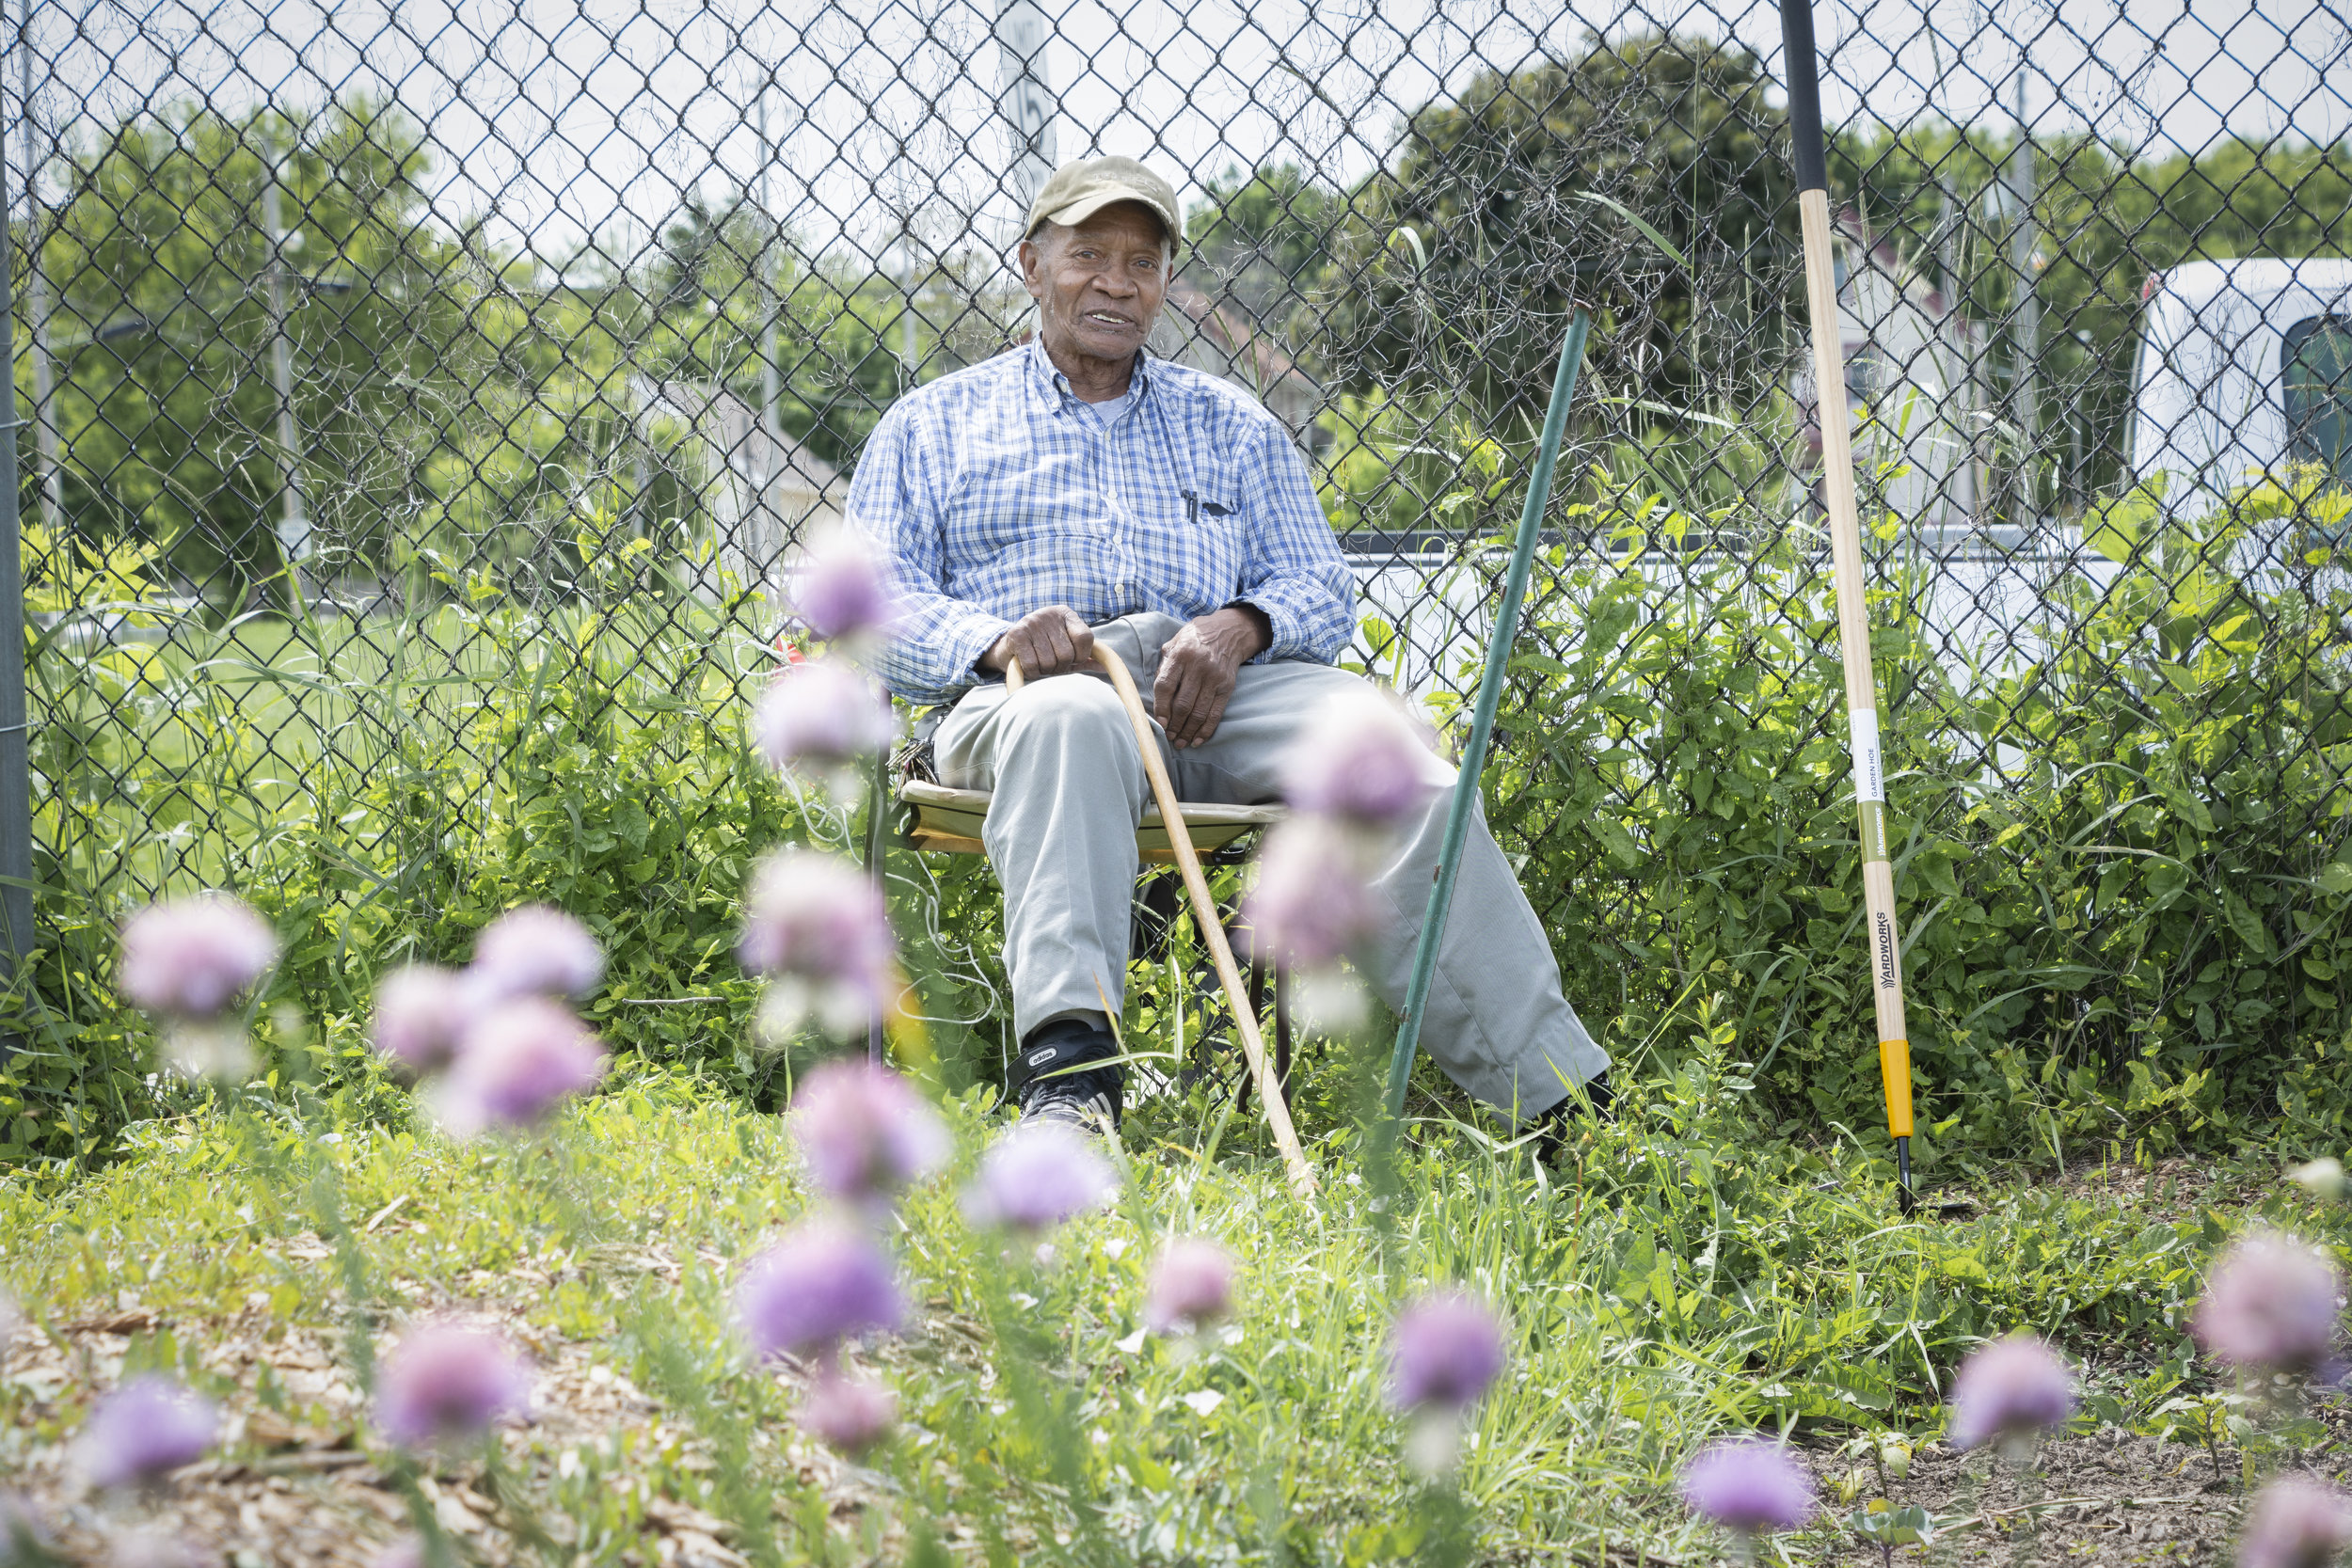 I met Edgar Jackson in a community garden surrounded by buildings and blacktop. He said he came to Milwaukee alone from Louisiana in 1971, that he worked at a tannery until he retired. At 77, he now uses a cane to get around, but he carefully tends his garden plot or relaxes in his chair and gazes at his flowers.